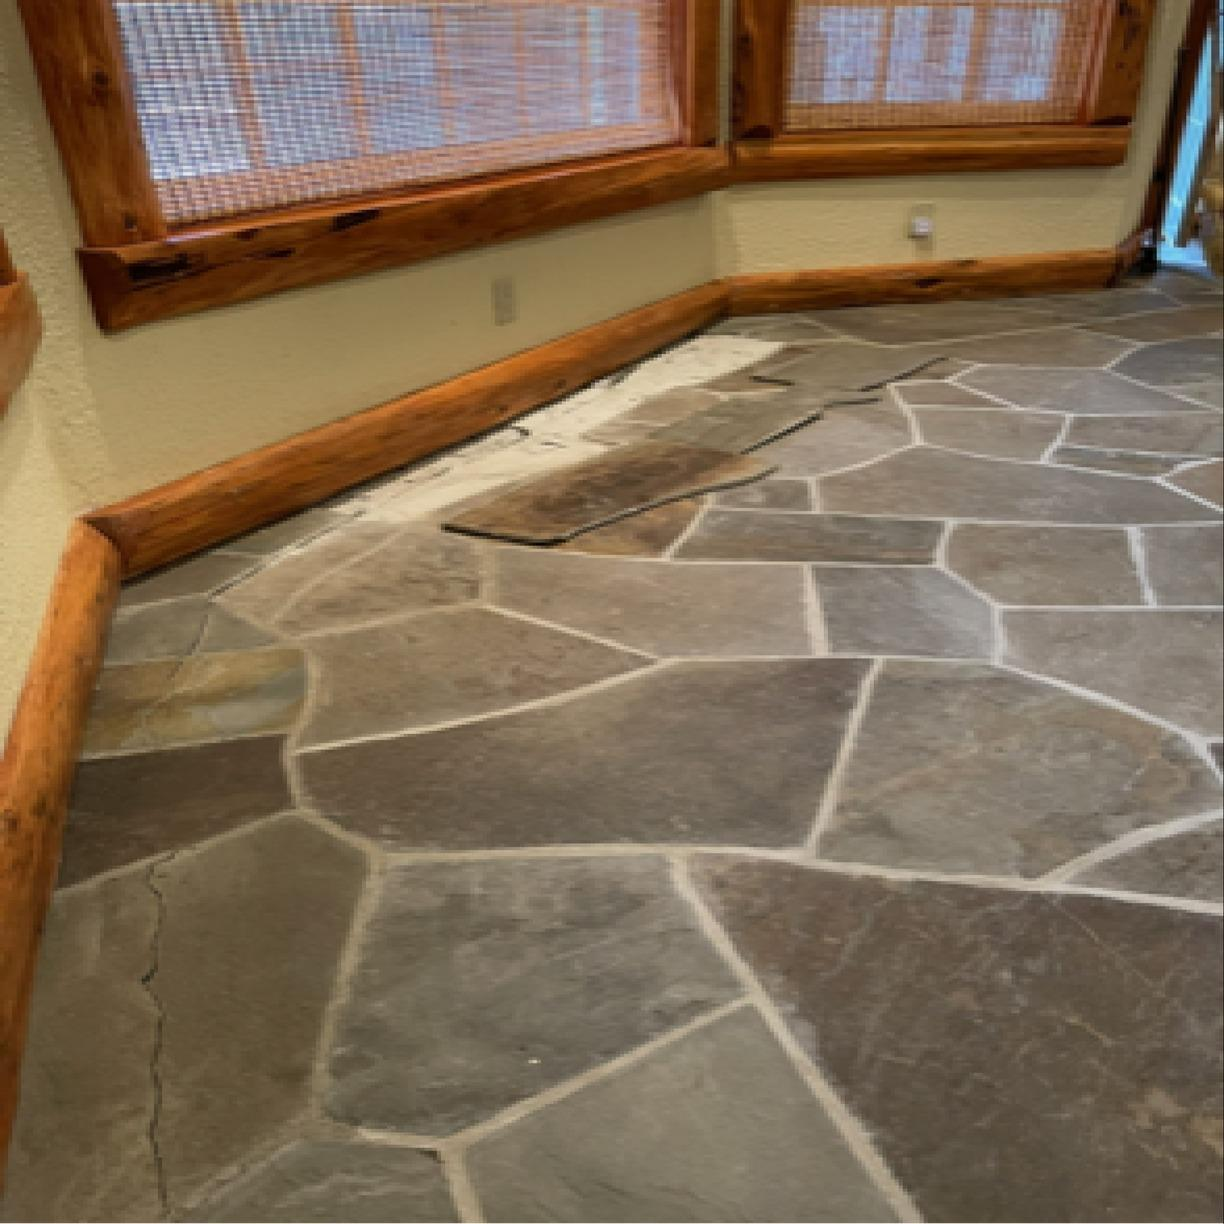 Lifting and Leveling Sunken Floors Due To Poor Compaction With PolyLevel - White Lake, NY - Before Photo